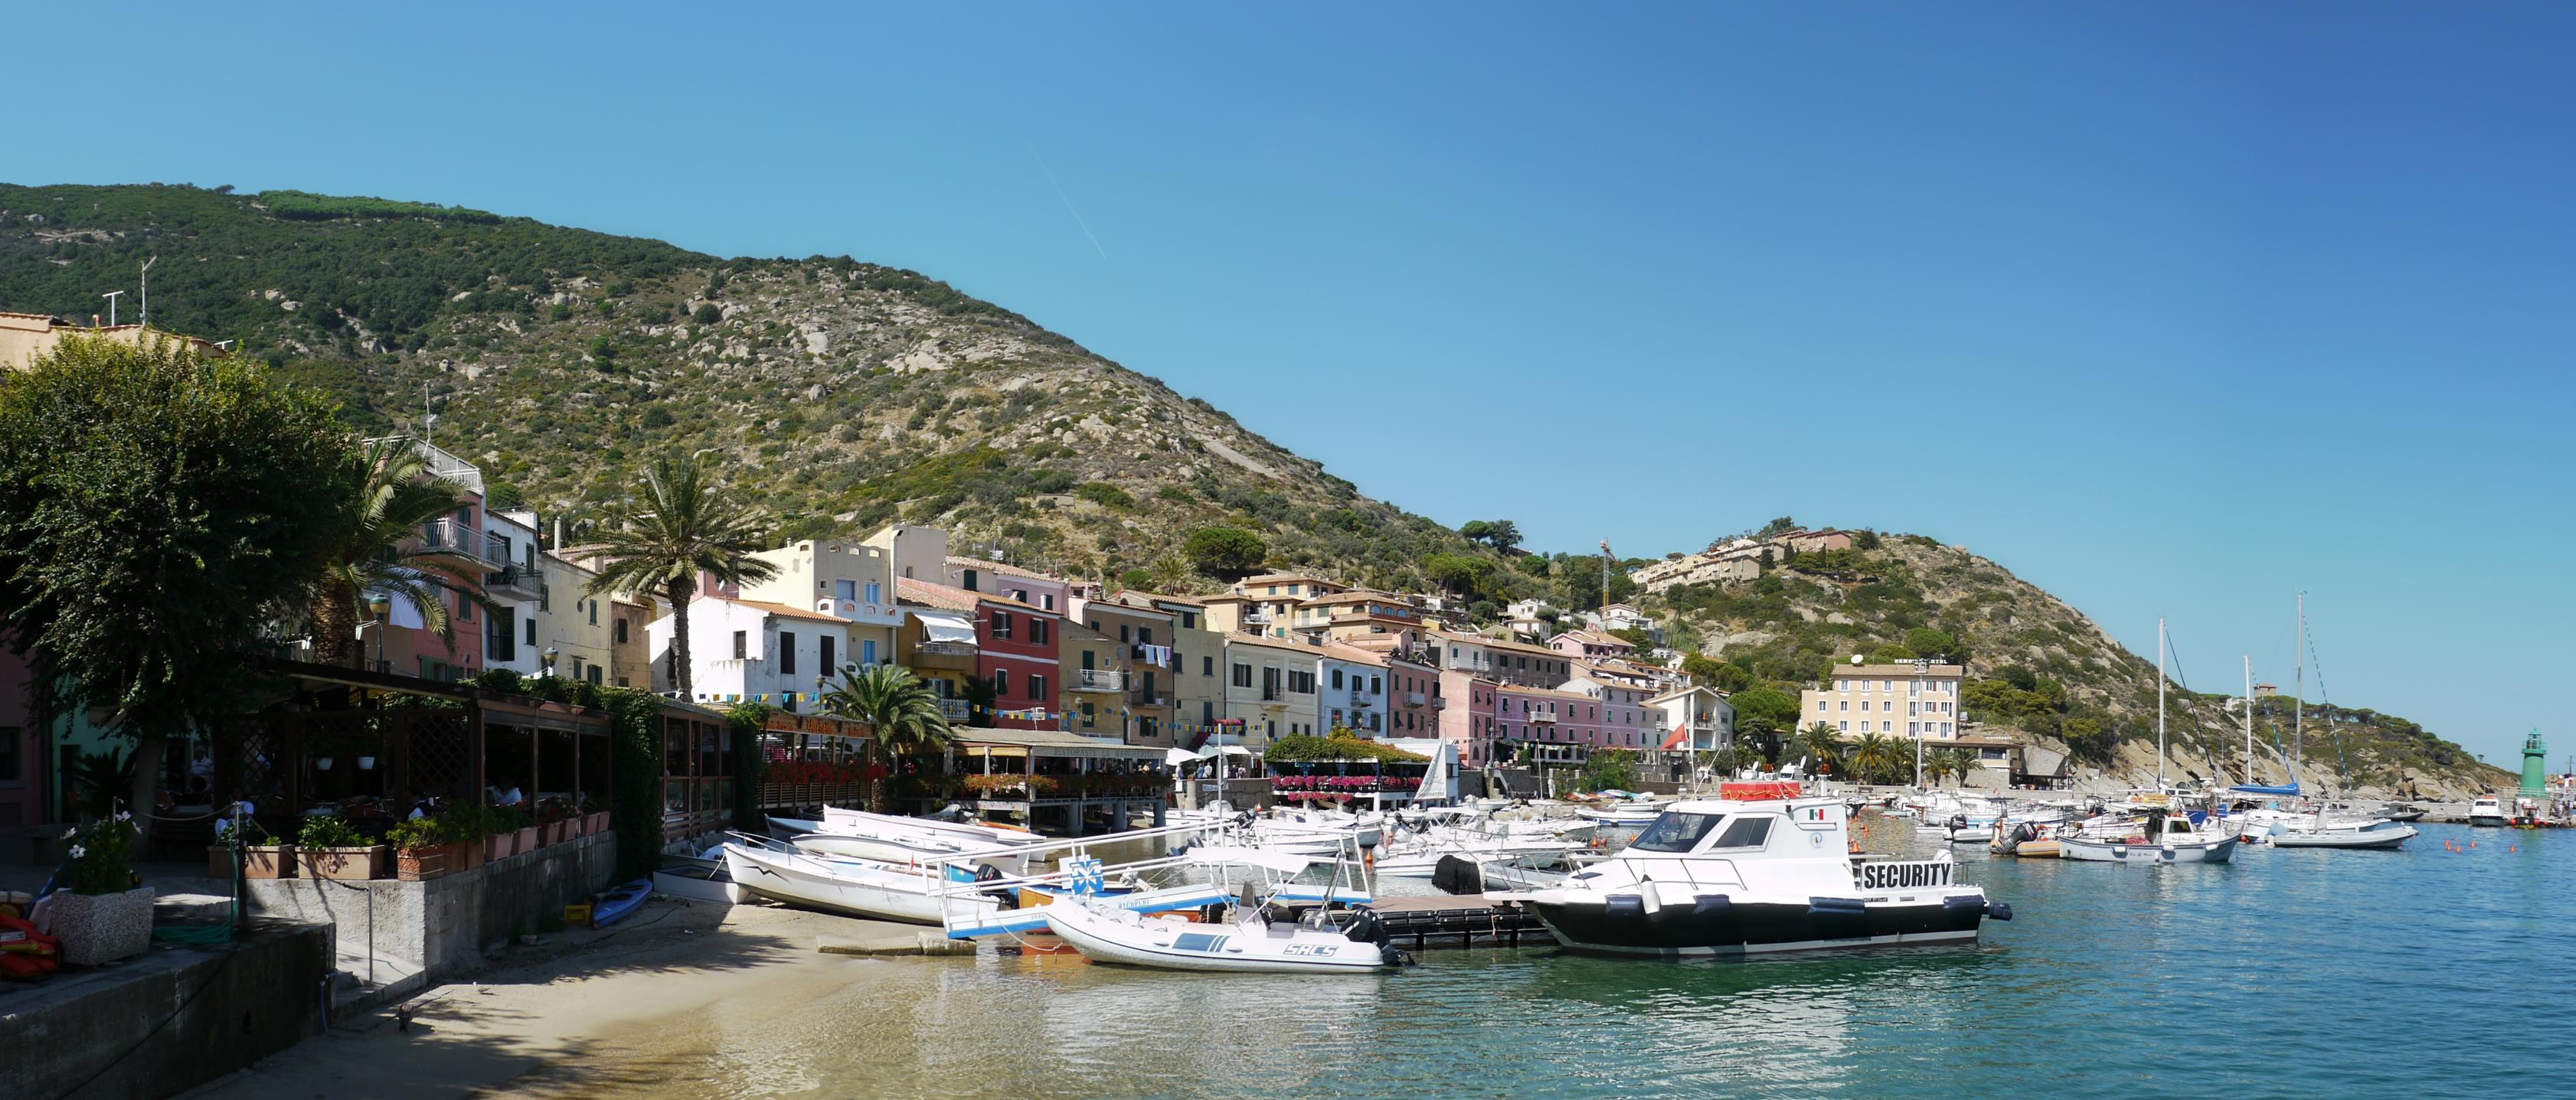 Despite the nearby shipwreck, Giglio was a beautiful island for a daytrip visit